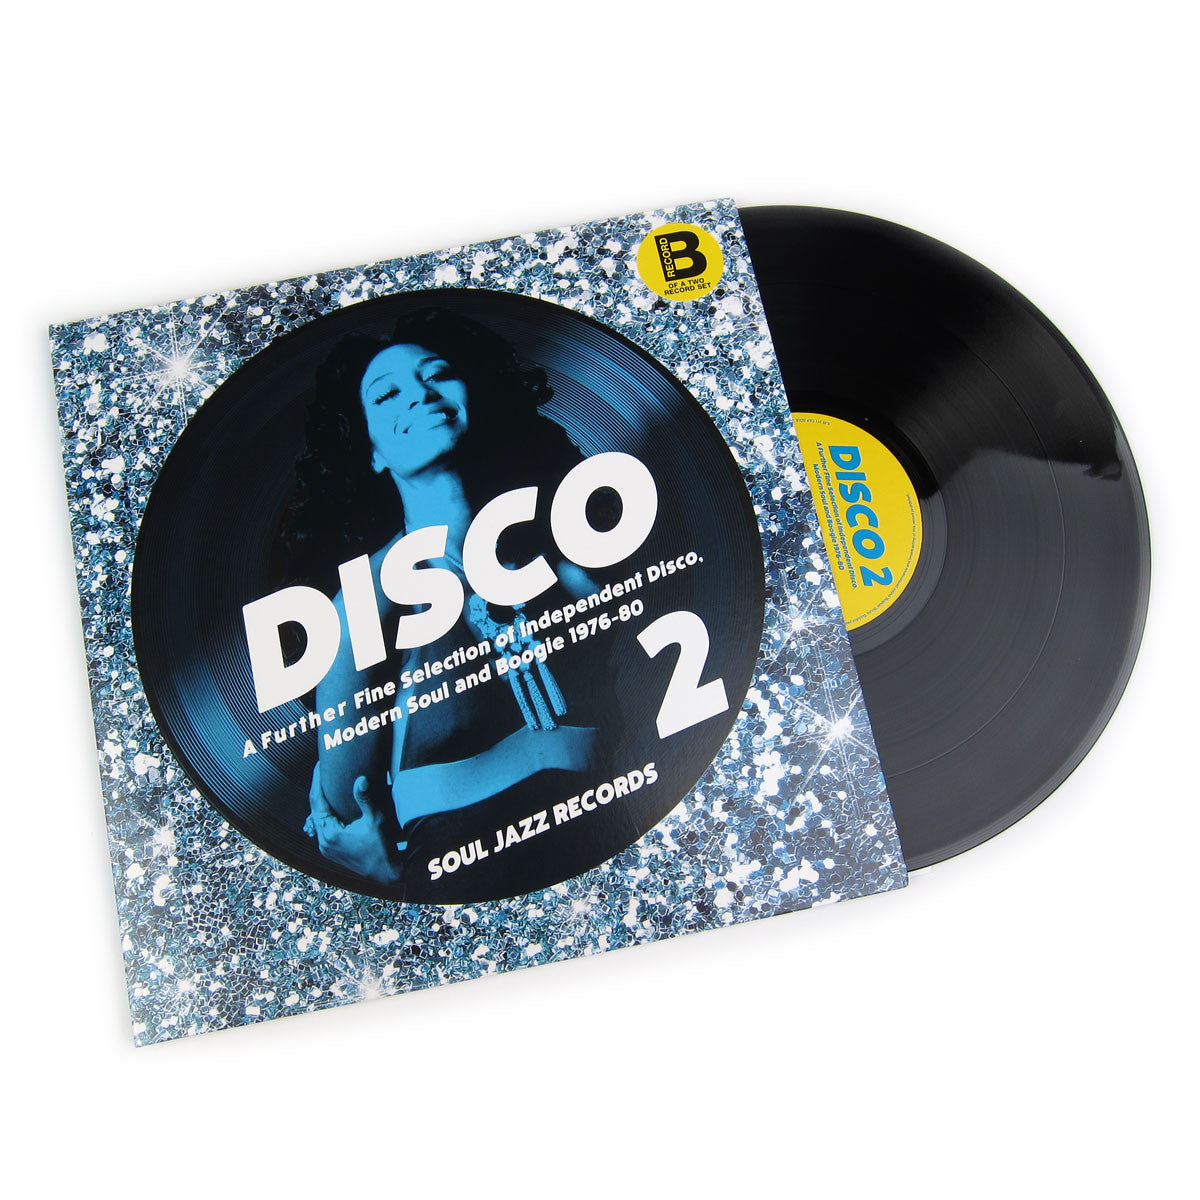 Soul Jazz Records: Disco 2 1976-80 (Record B) Vinyl 2LP